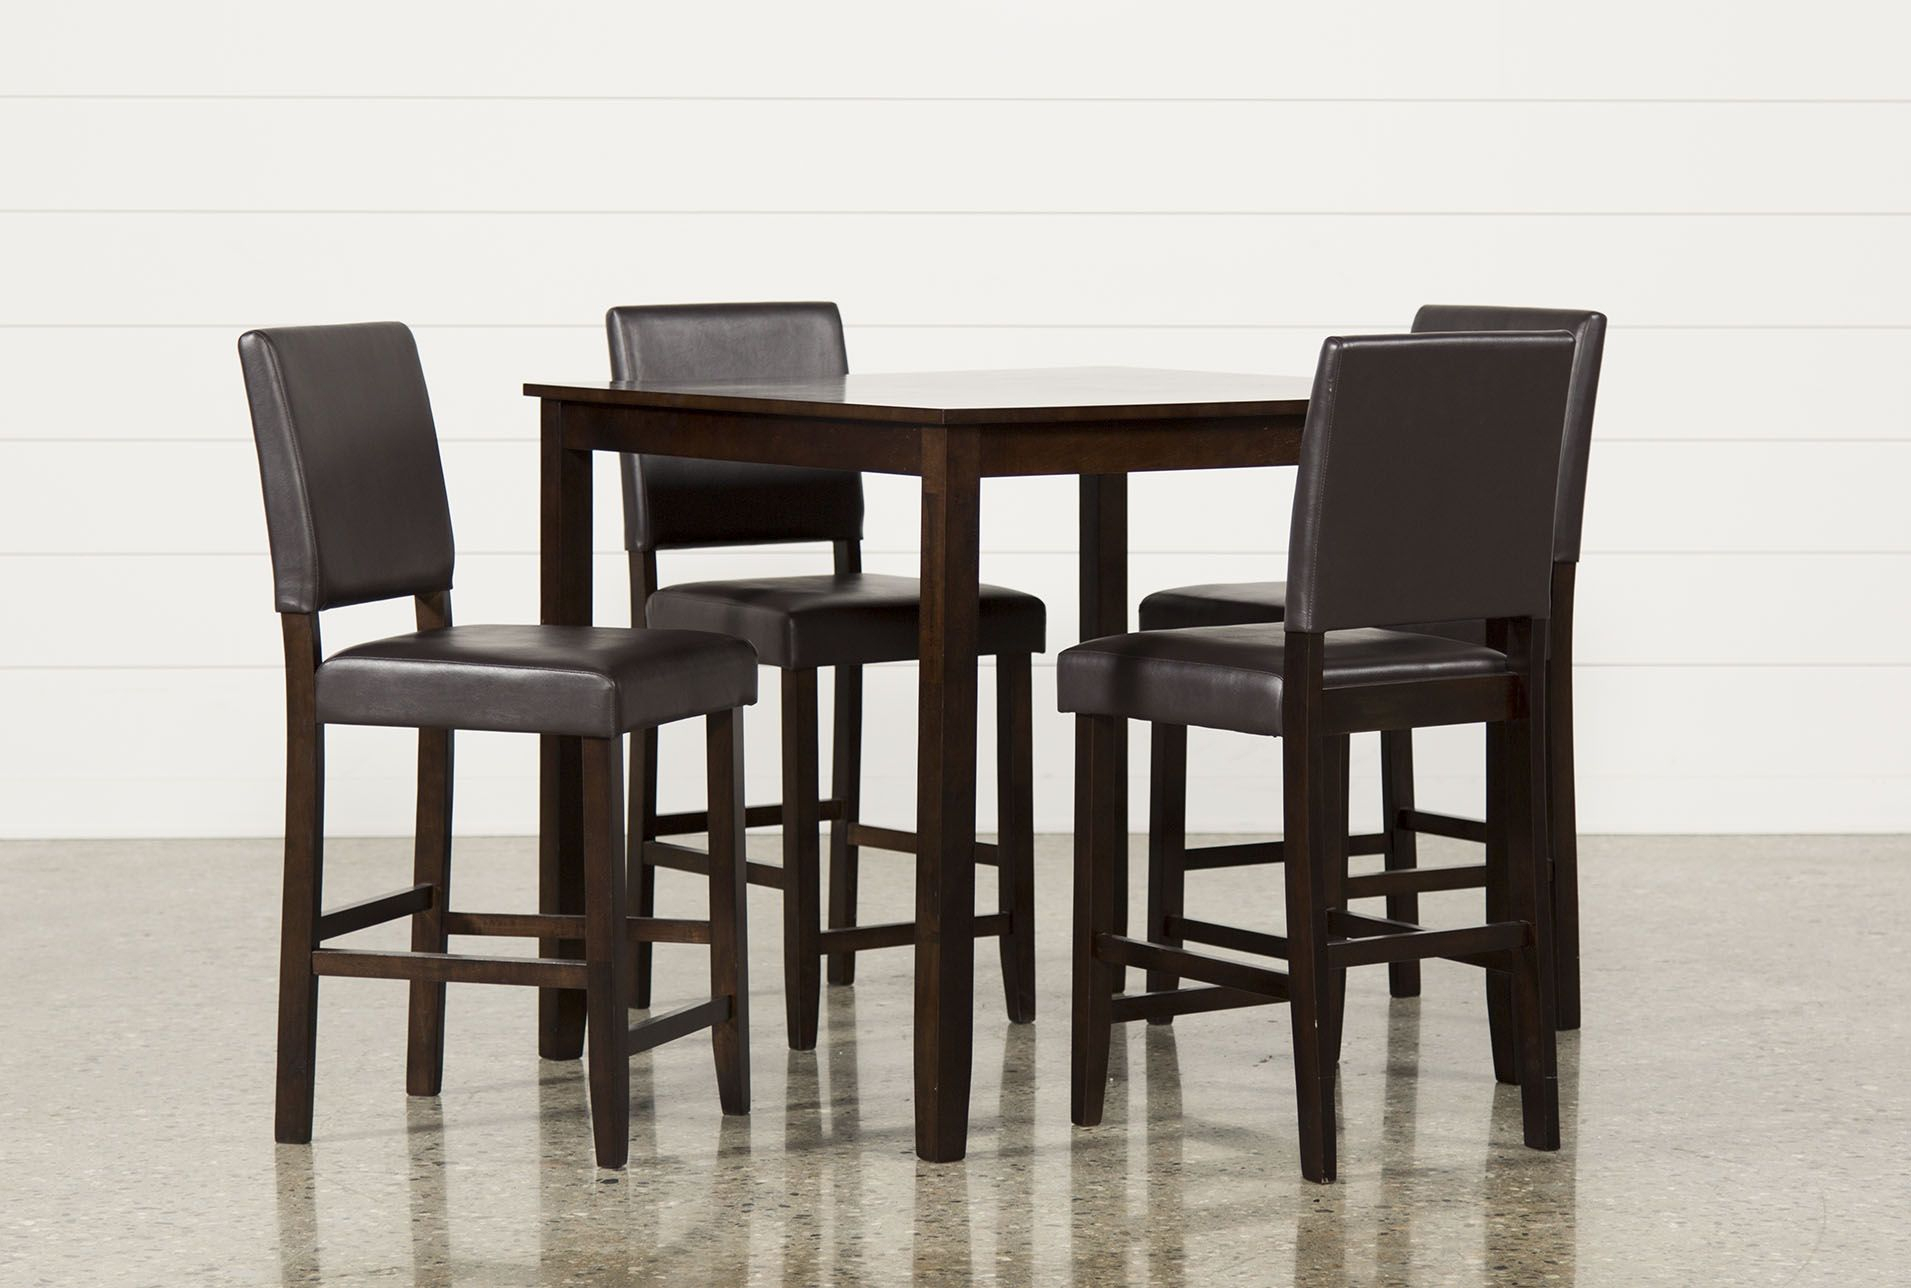 Jarrod 5 Piece Counter Set, Cappucino, Kitchen & Dining Furniture Pertaining To 2018 Jarrod 5 Piece Dining Sets (View 2 of 20)